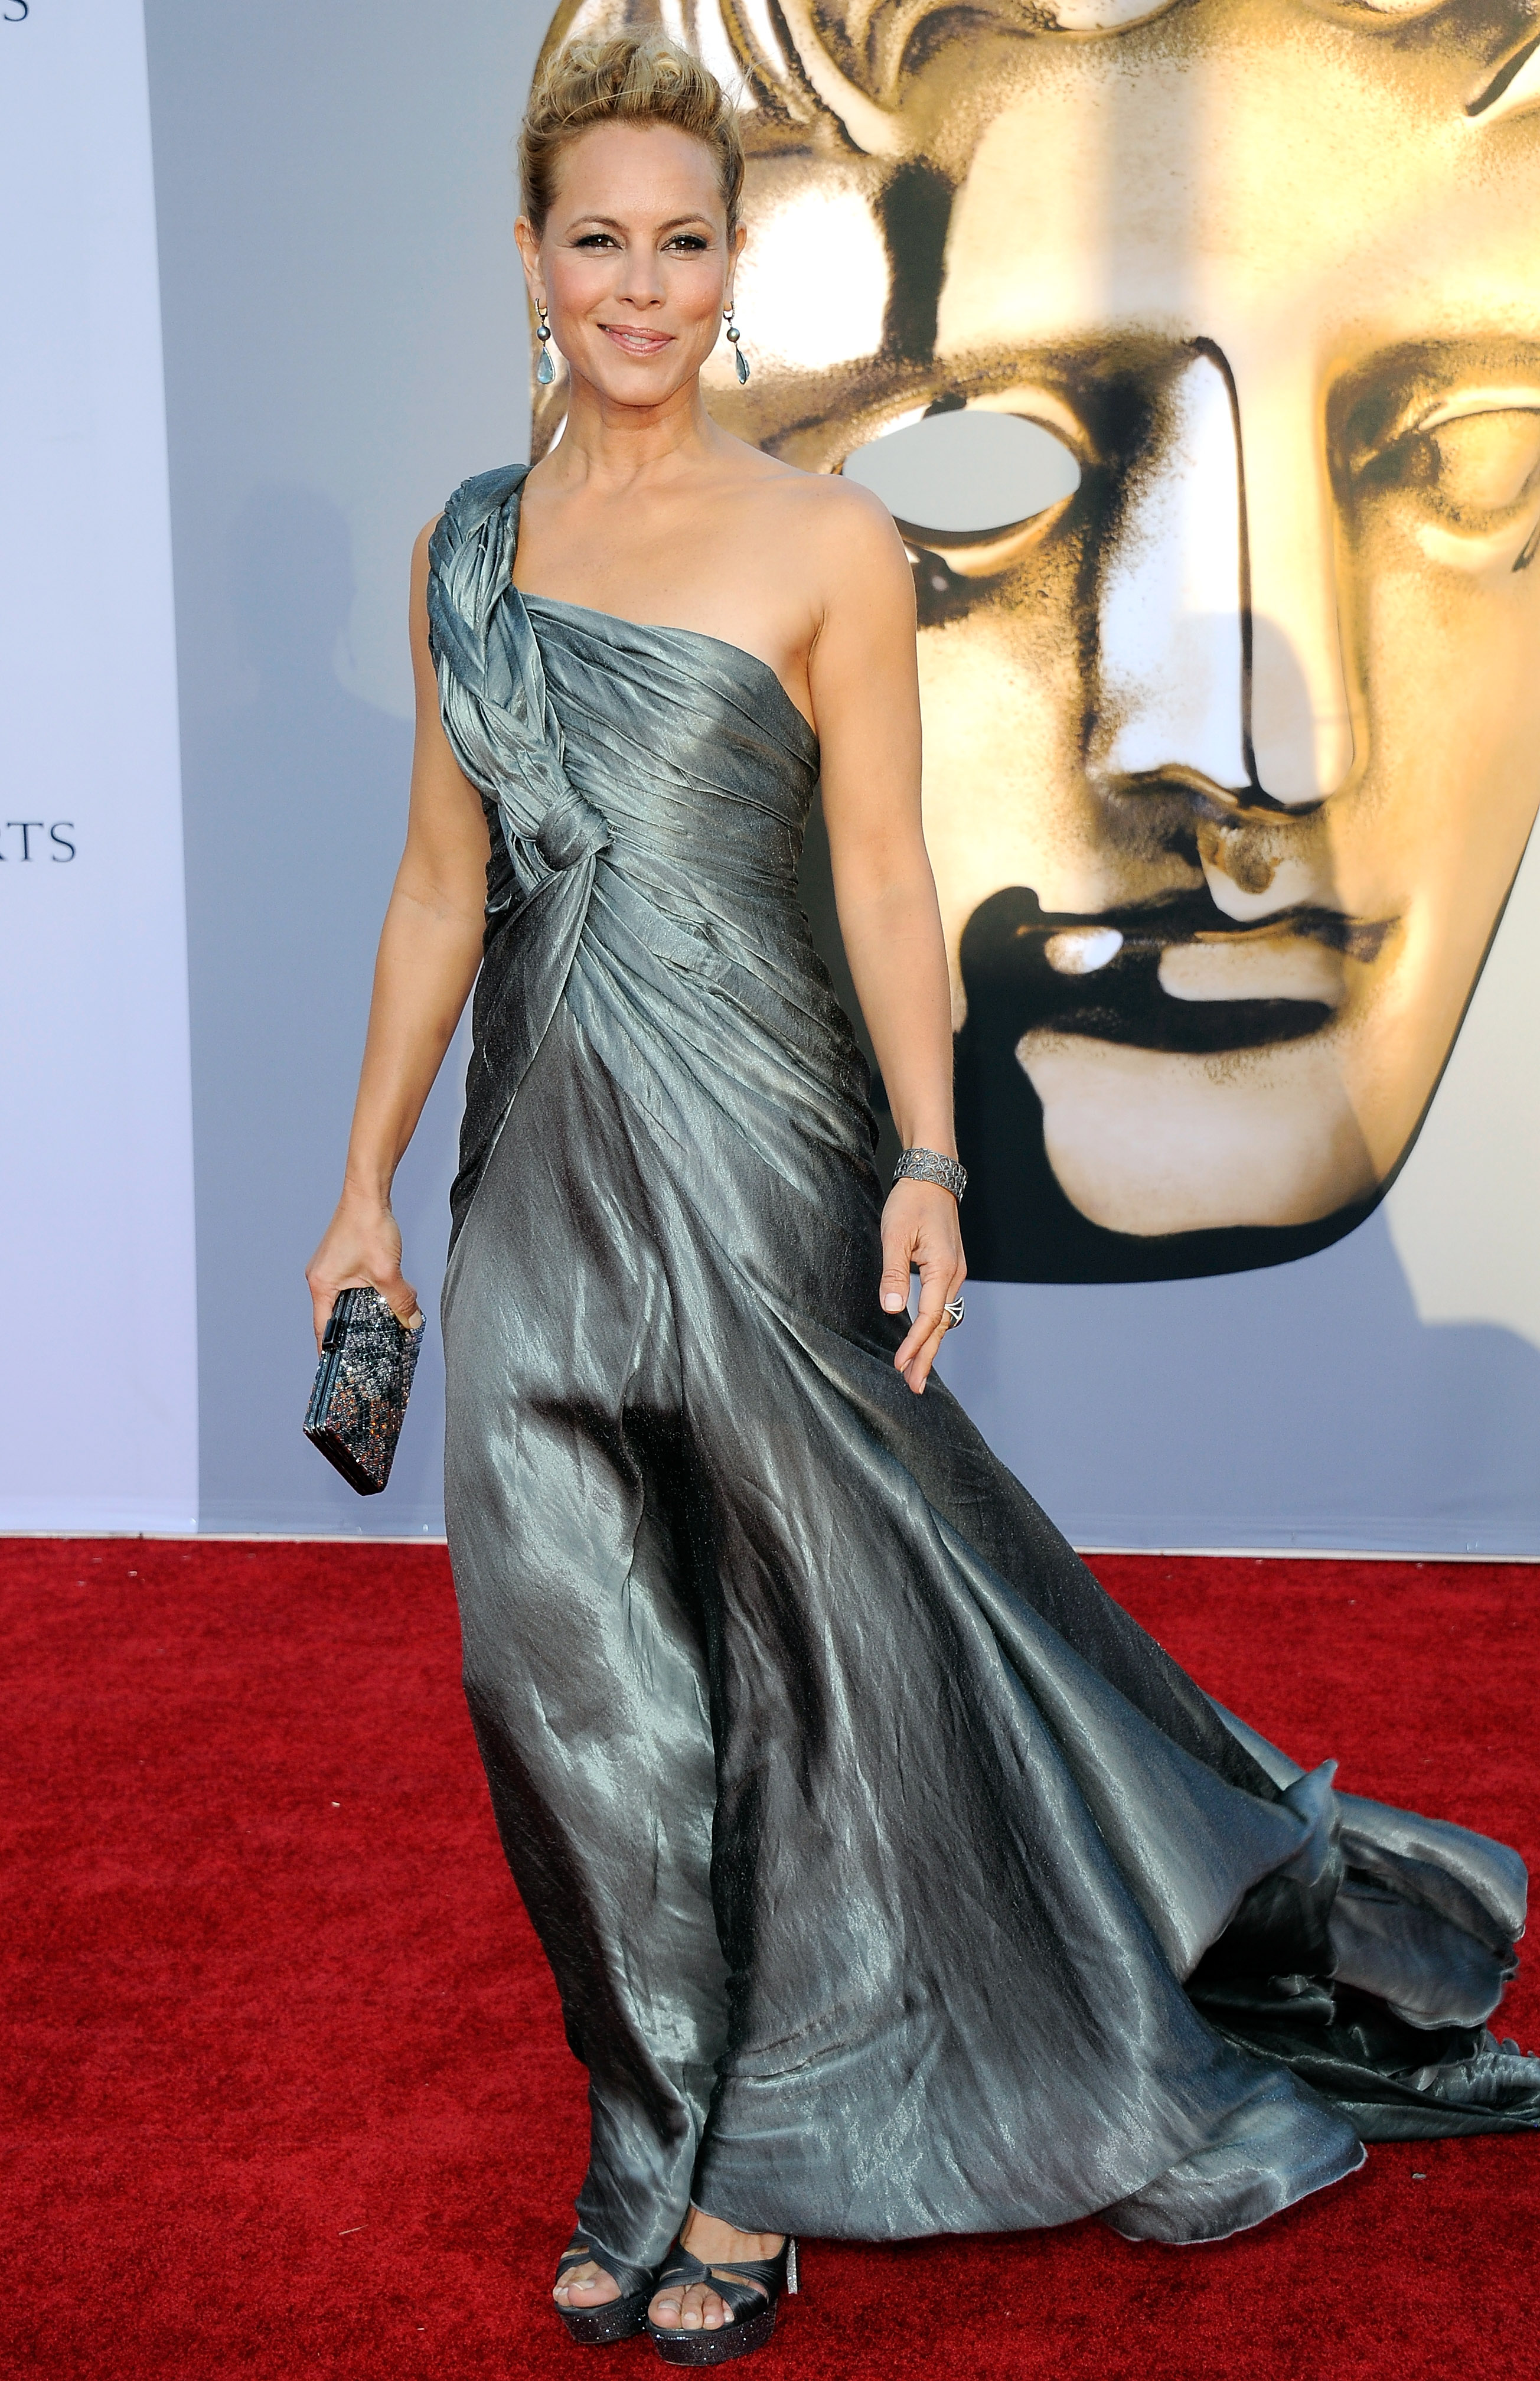 Maria Bello at the BAFTA Brits to Watch event in LA.